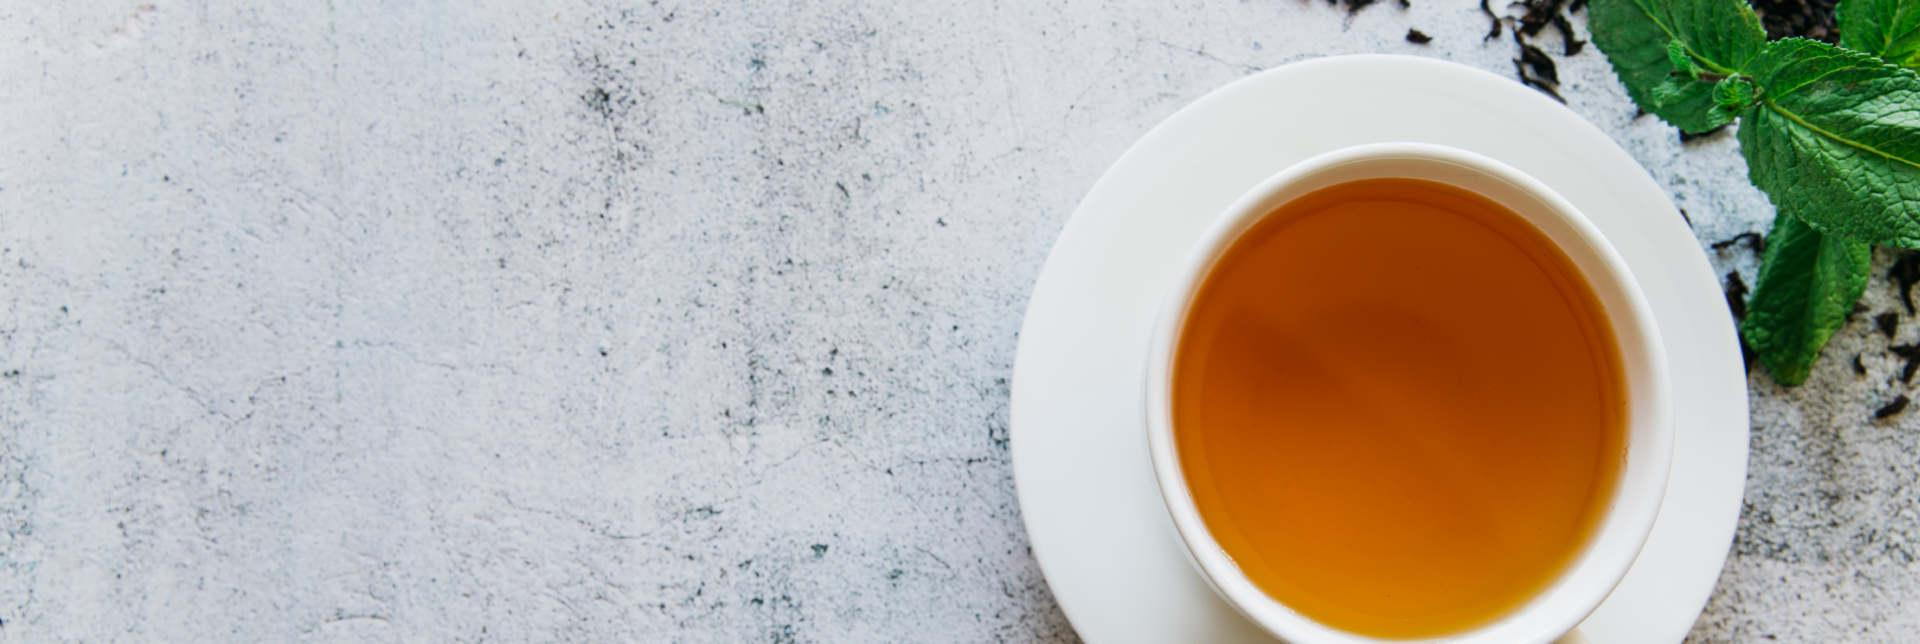 coffee-or-green-tea-which-is-better